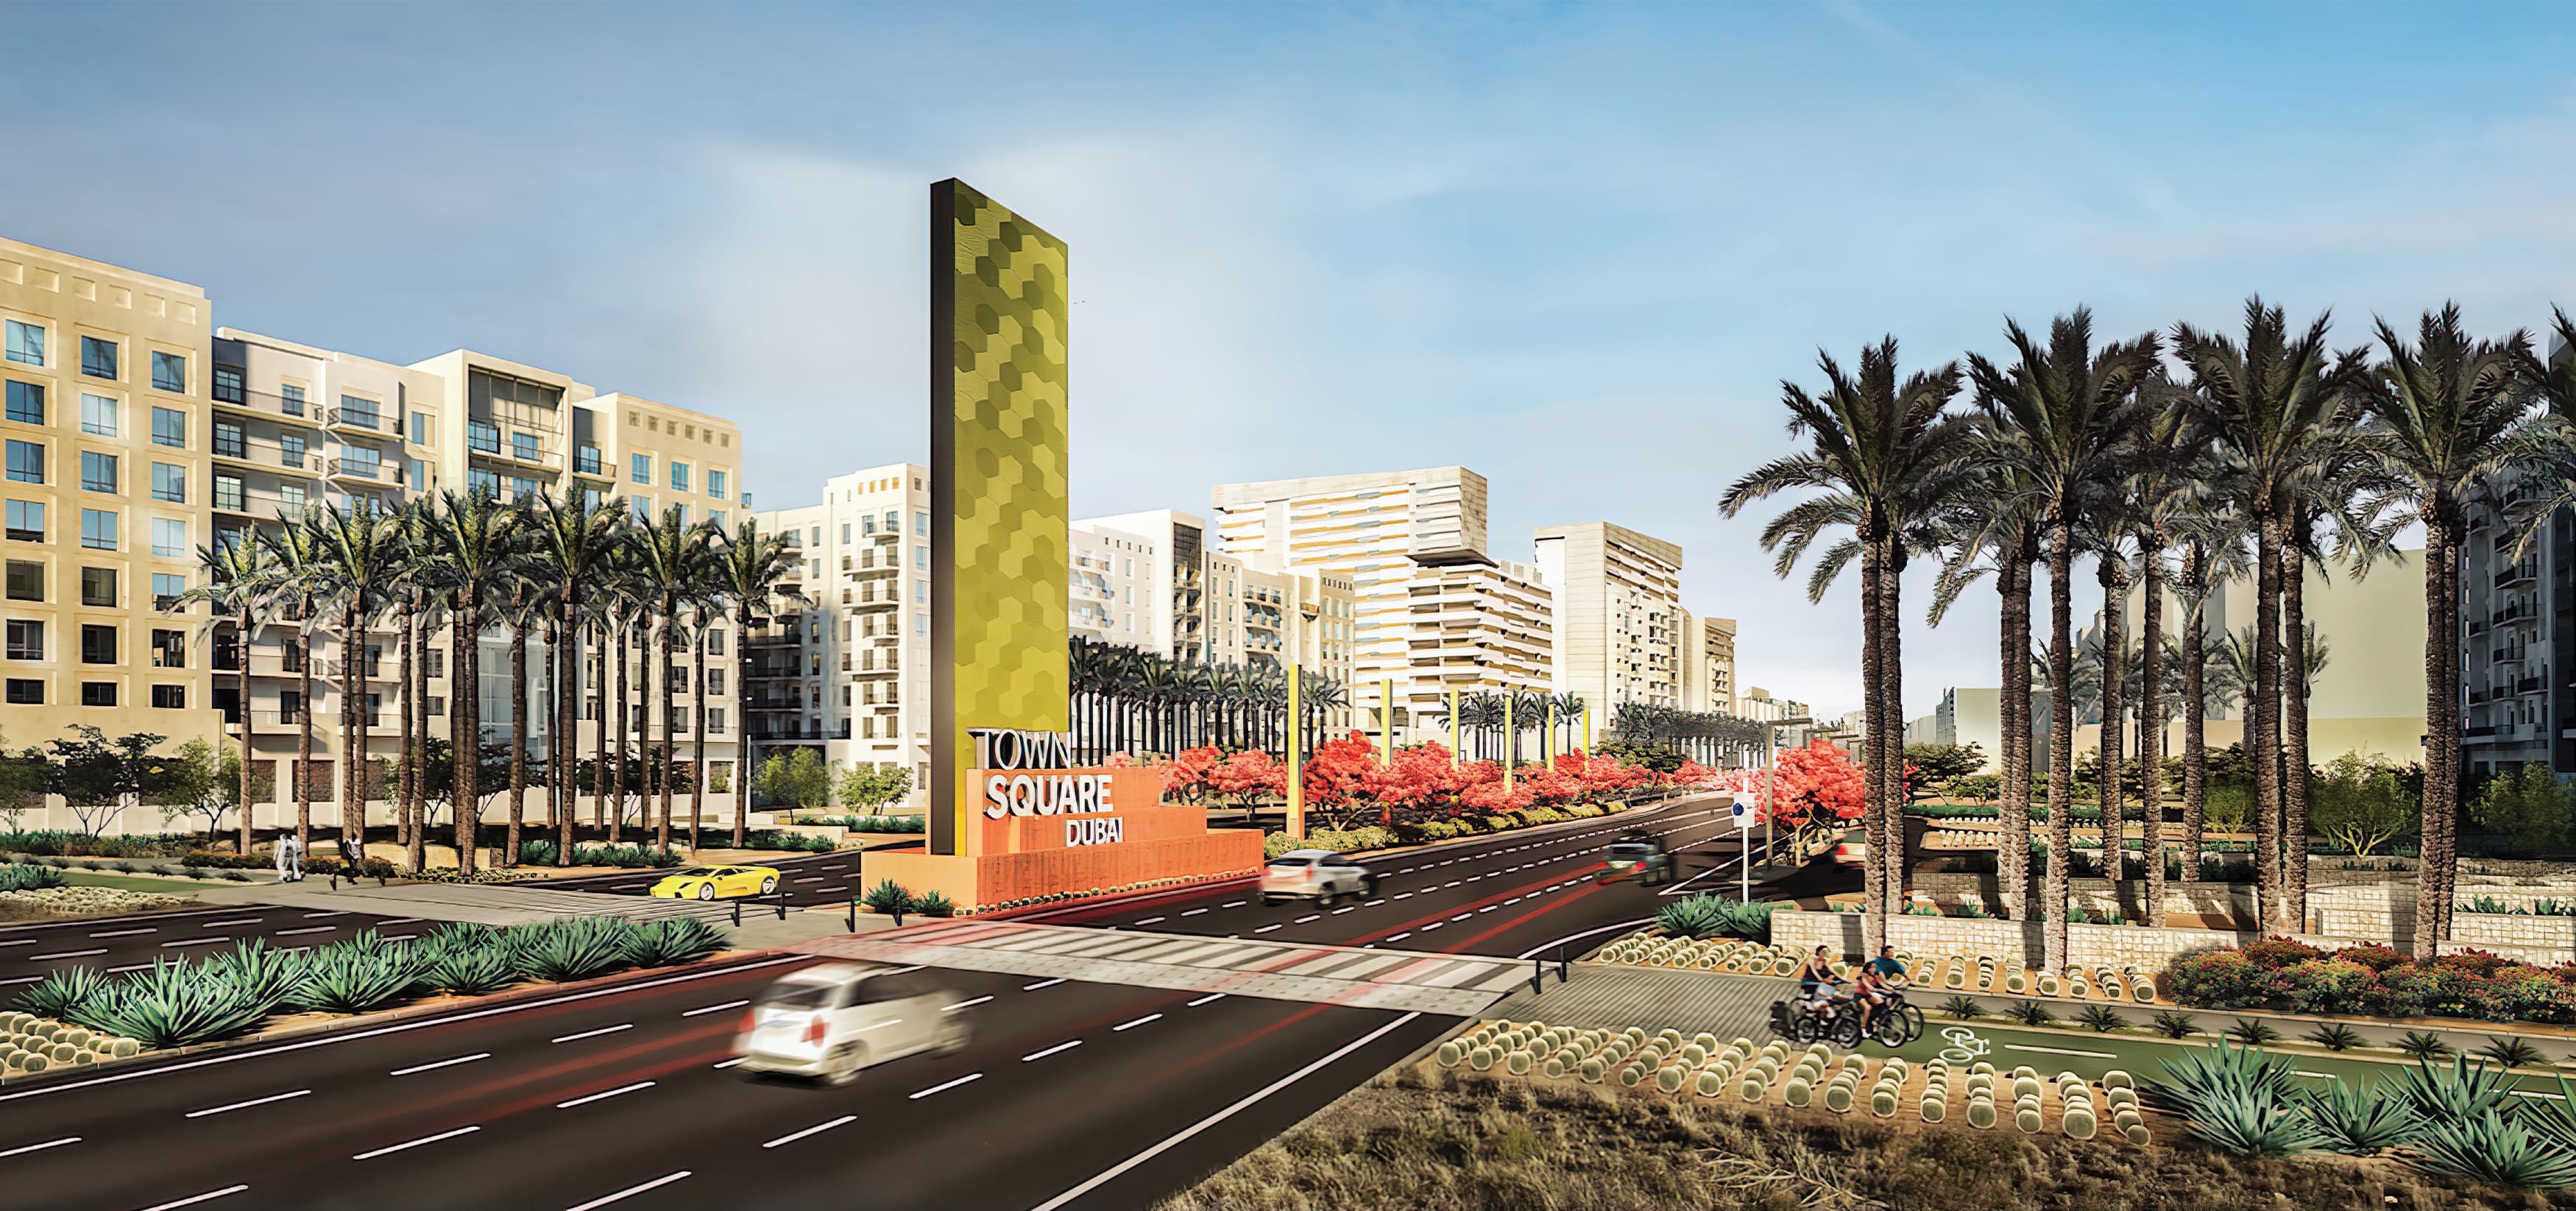 RSM Design prepared a system of signage and wayfinding for Town Square Dubai, a mixed-use development.